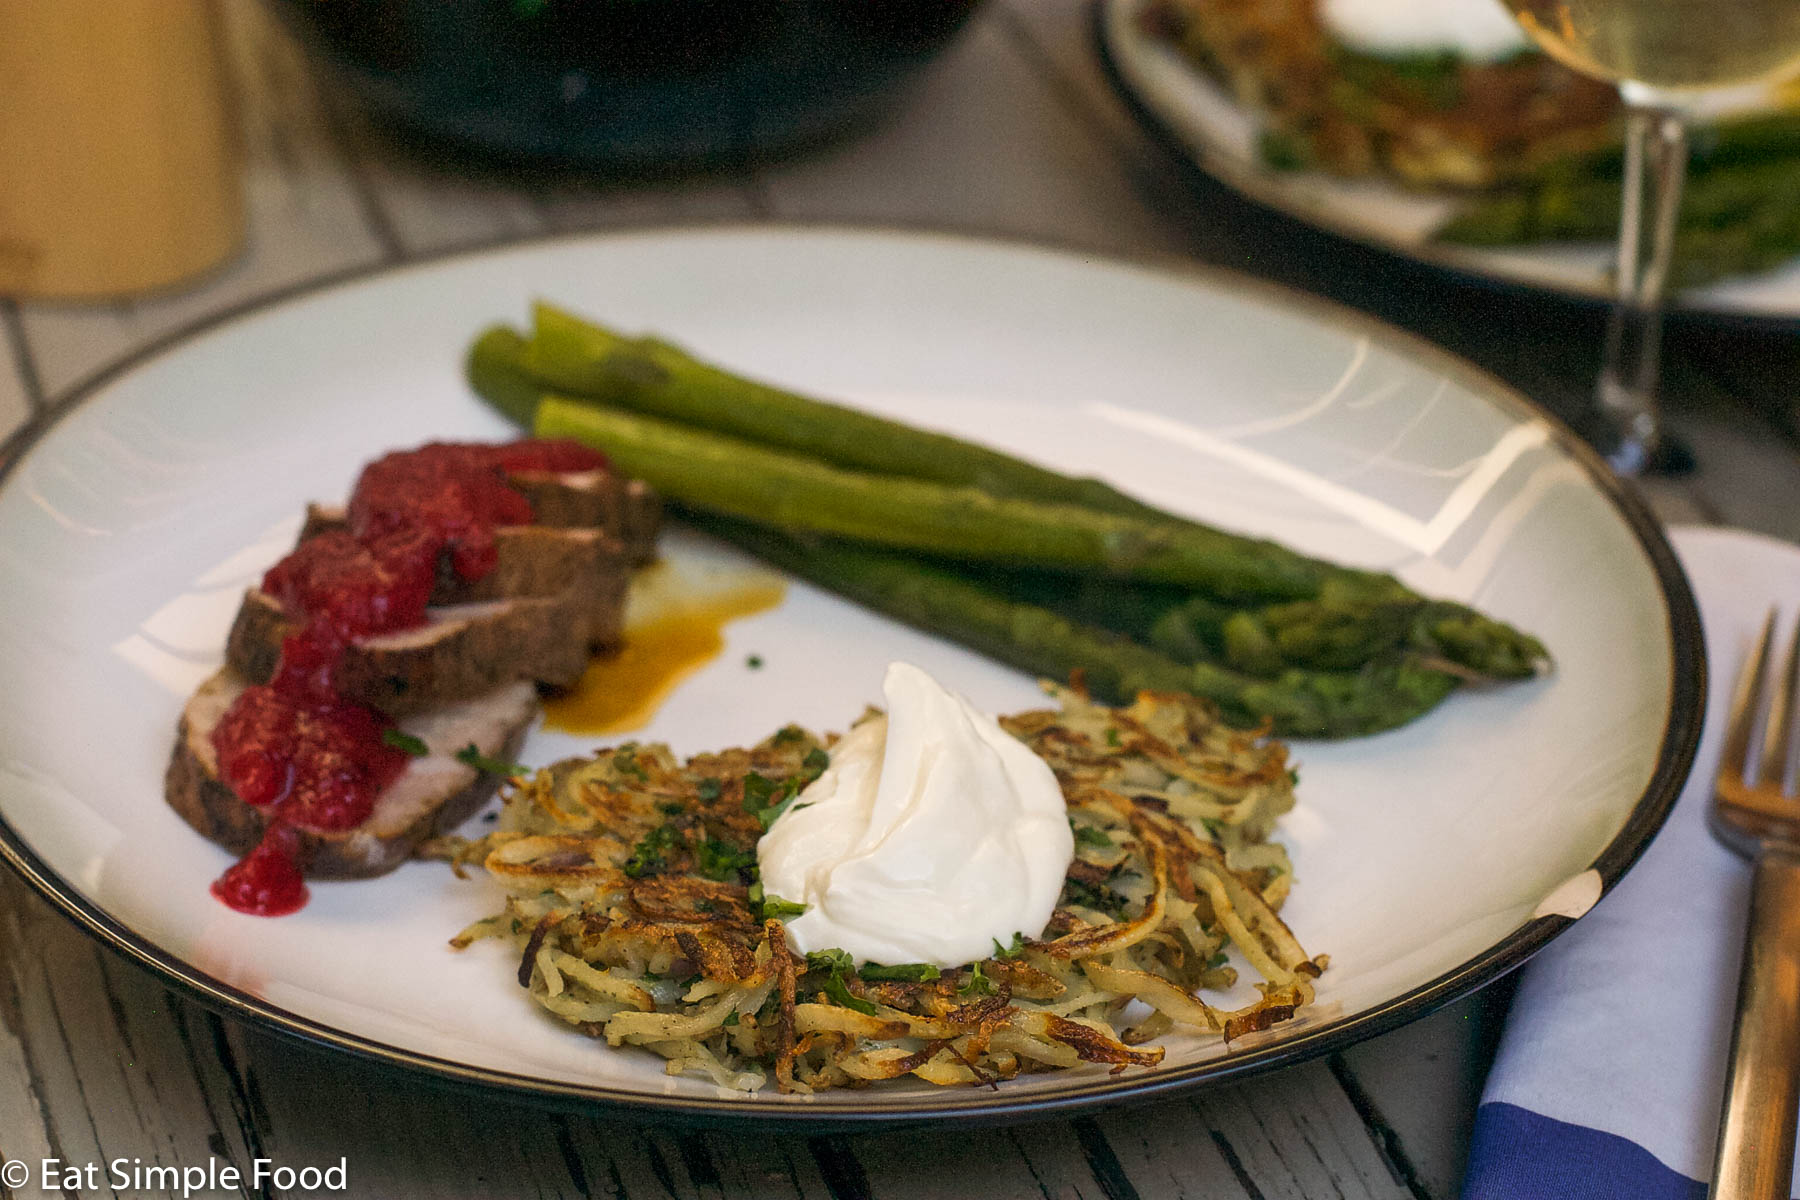 Potato latke (pancake) with a dollop of sour cream on a plate with asparagus and pork slices with plum sauce.